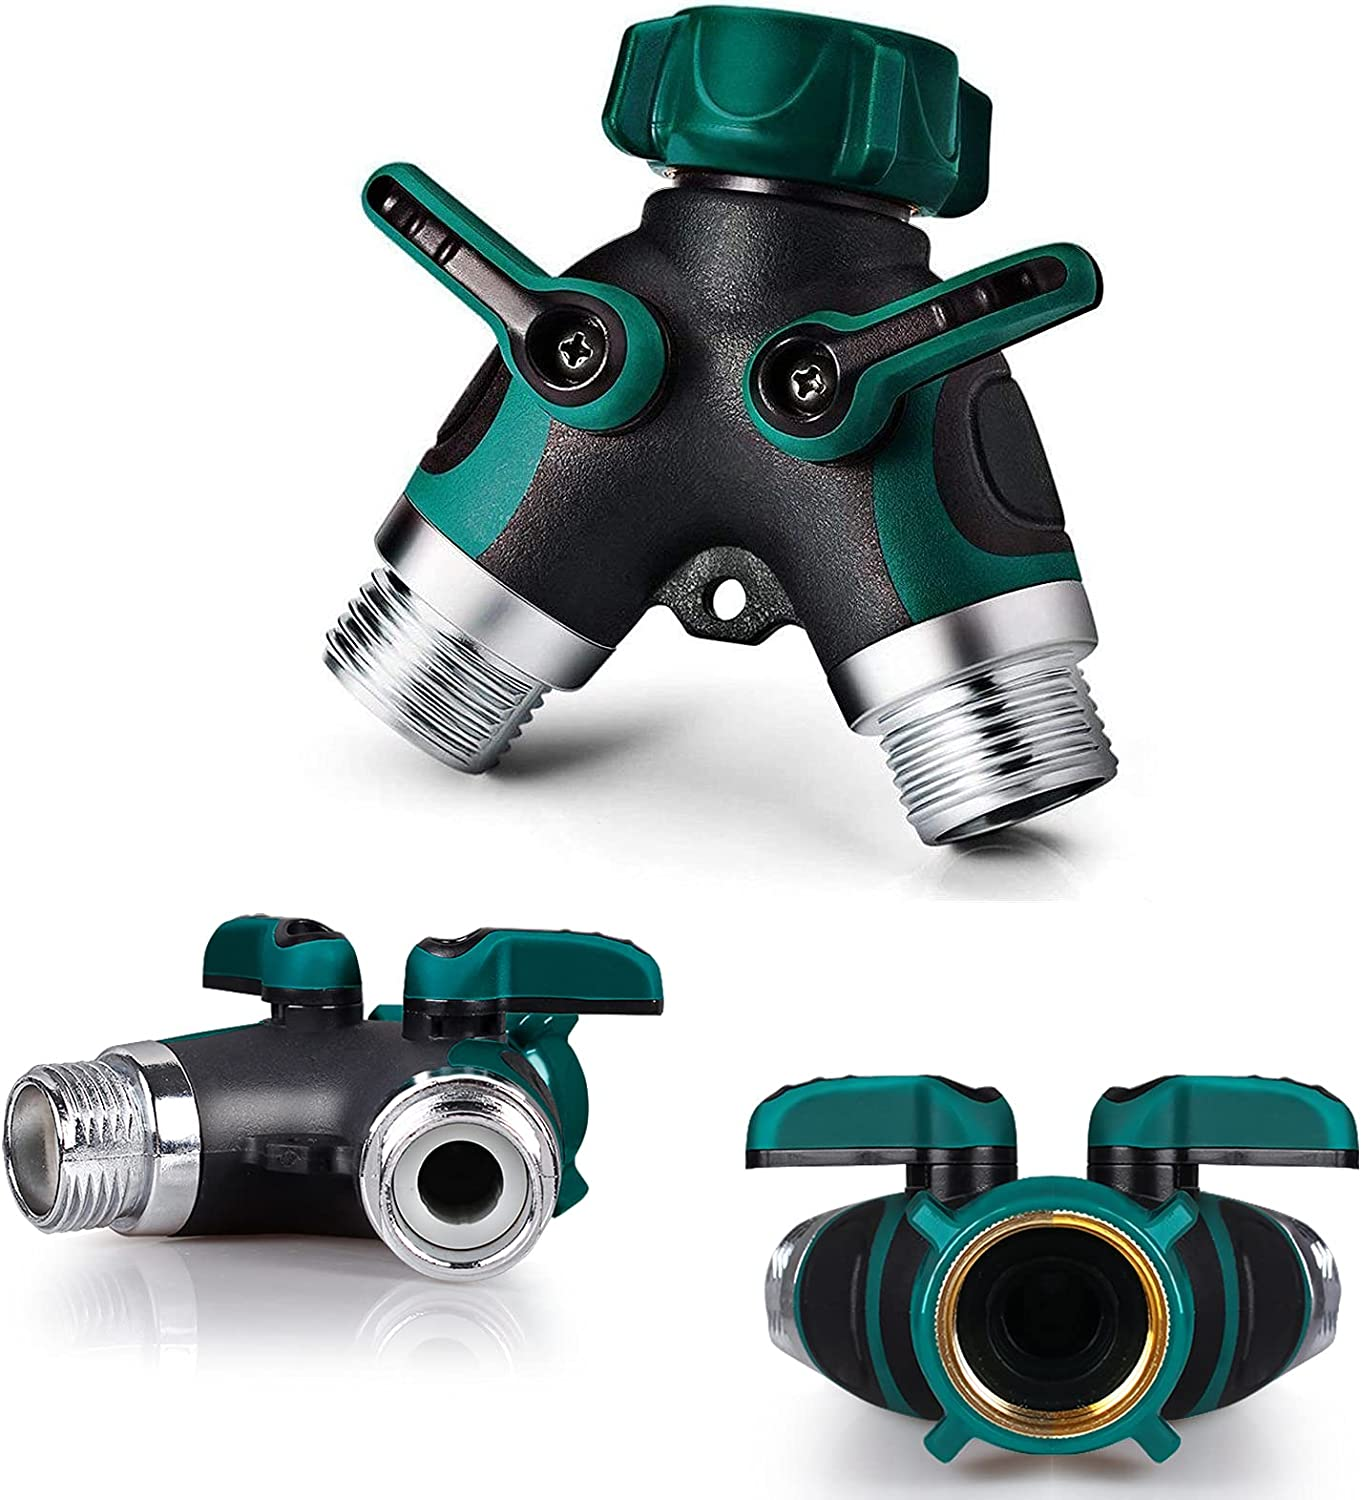 PinPon Graden Hose Splitter 2 Way Heavy Duty, Y Valve Hose Connnector Adapter, Pipe Spigot Adapter with 2 Valves for Outdoors and Indoors